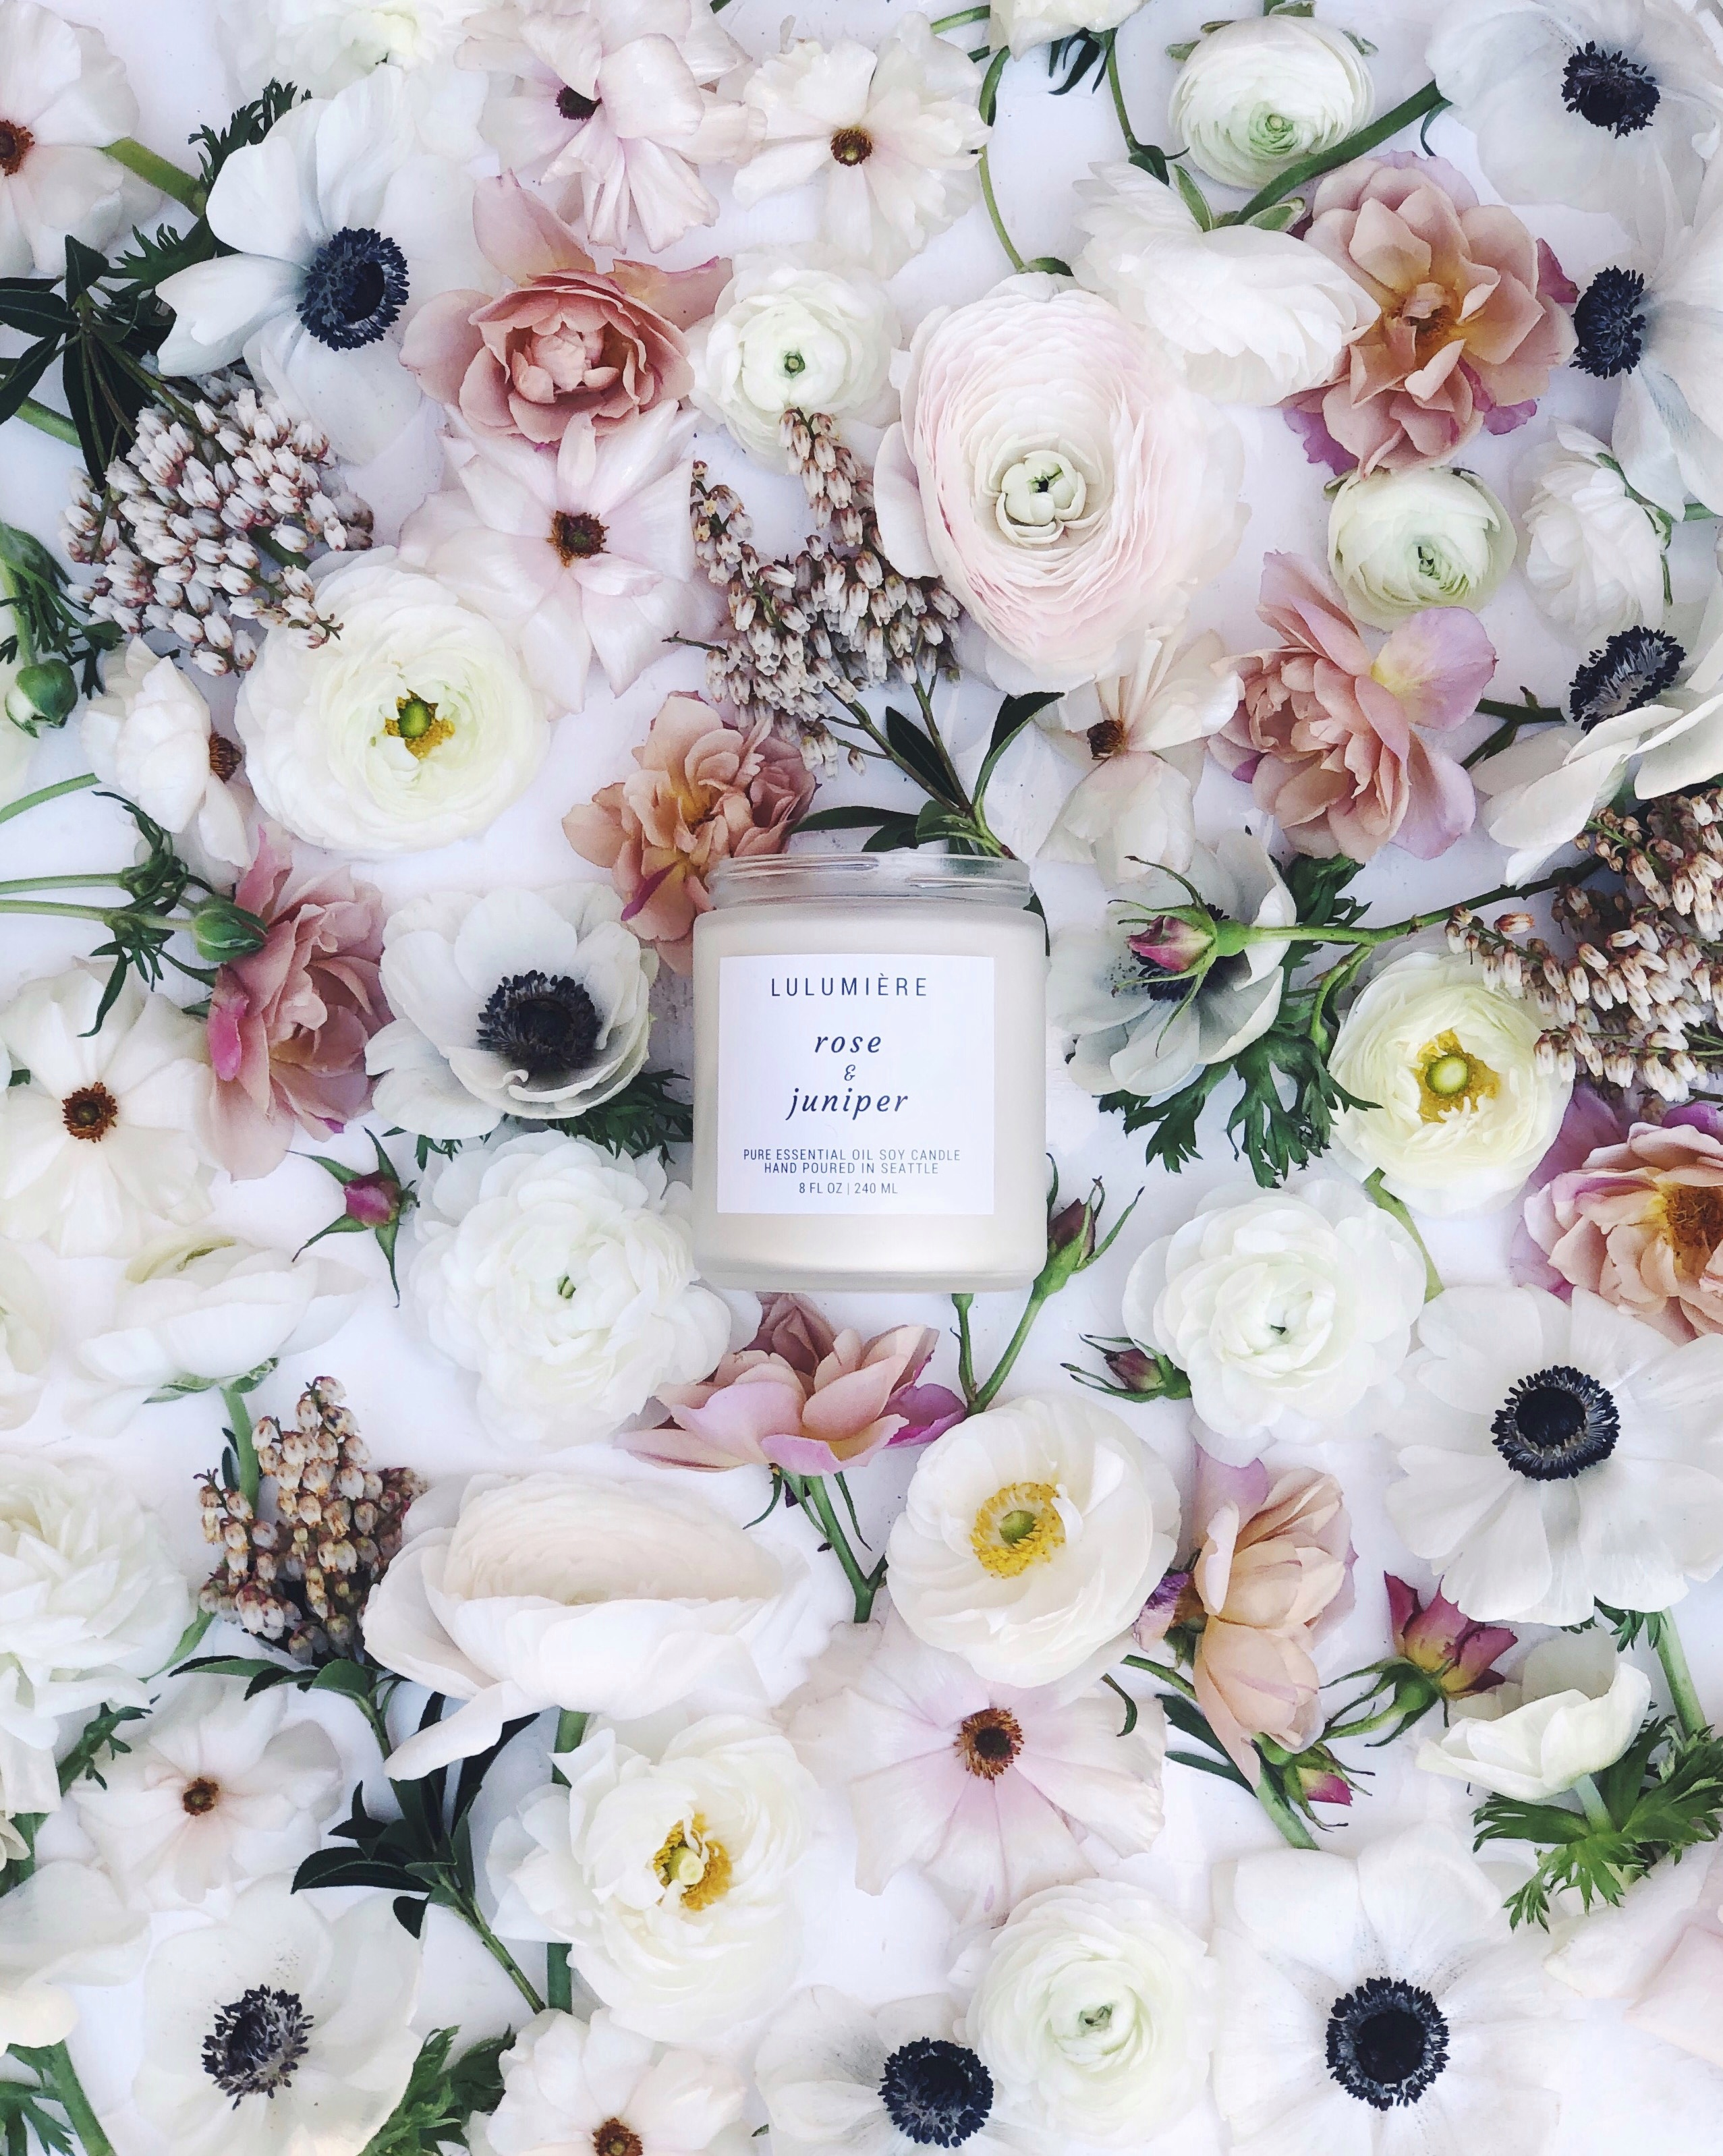 "<p>These locally made gorgeous{&nbsp;}<a  href=""https://lulumiere.com/"" target=""_blank"" title=""https://lulumiere.com/"">LULUMIÈRE</a>{&nbsp;}candles are all inspired by the beautiful PNW.{&nbsp;}With Mother's Day coming up, get a complimentary handwritten gift note and direct shipping to the special people in your life.{&nbsp;} She will love every scent, you can't go wrong here folks!{&nbsp;} This Rose and Juniper Candle goes for $26 (Image:{&nbsp;}LULUMIÈRE){&nbsp;}</p>"